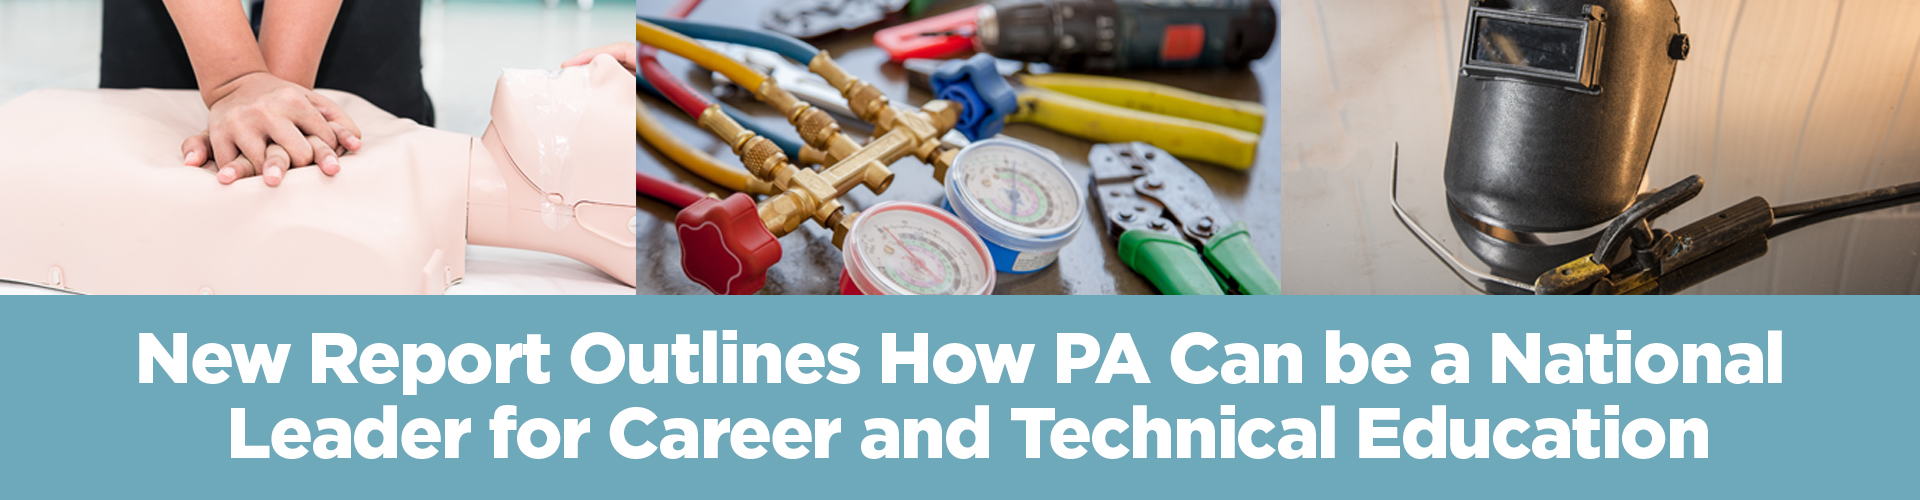 New Report Outlines How PA Can be a National Leader for Career and Technical Education